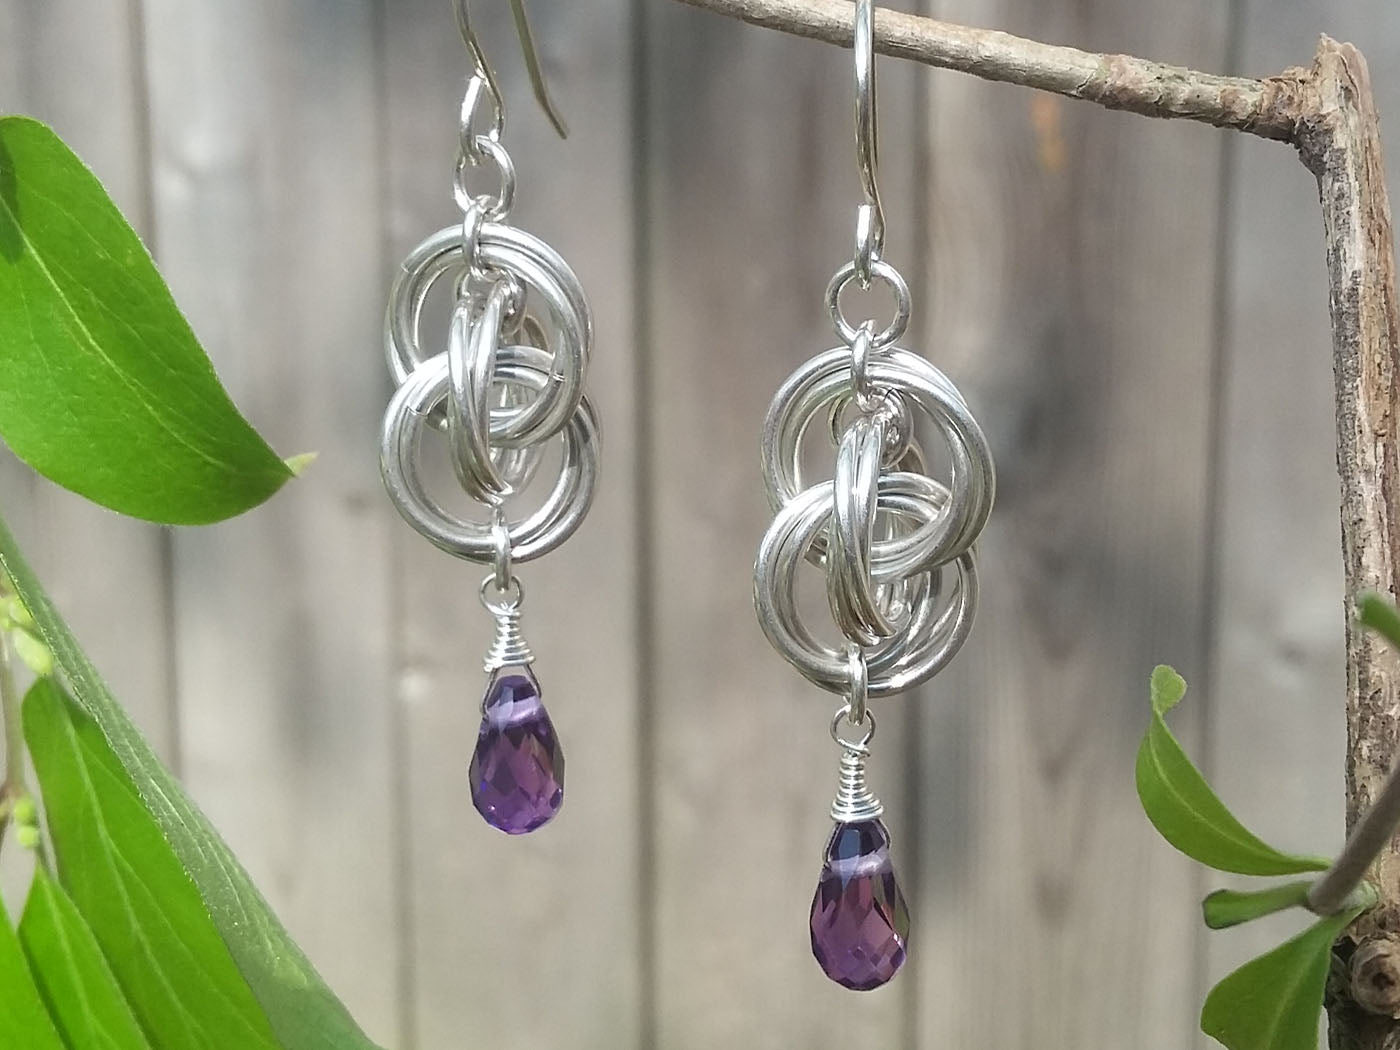 Amethyst Sterling Silver Spiral Twist Earrings - crystalsbysabeads.com